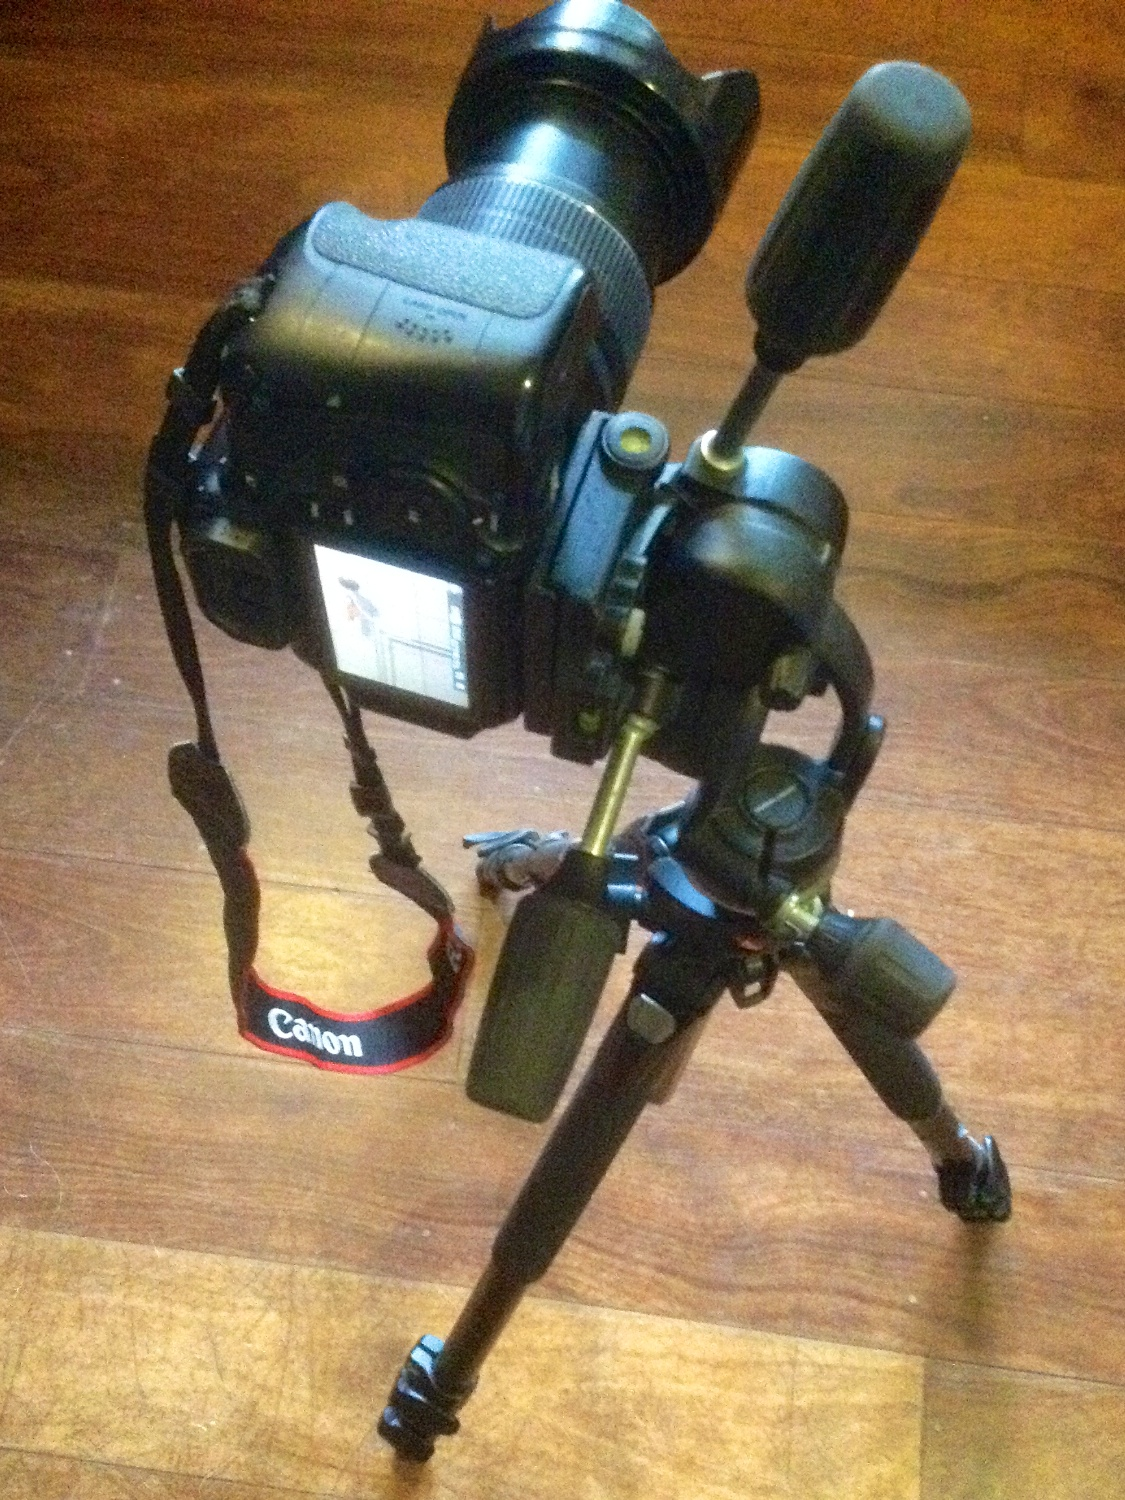 Manfrotto 808 3-way tilt head tripod with Canon 60D atop.